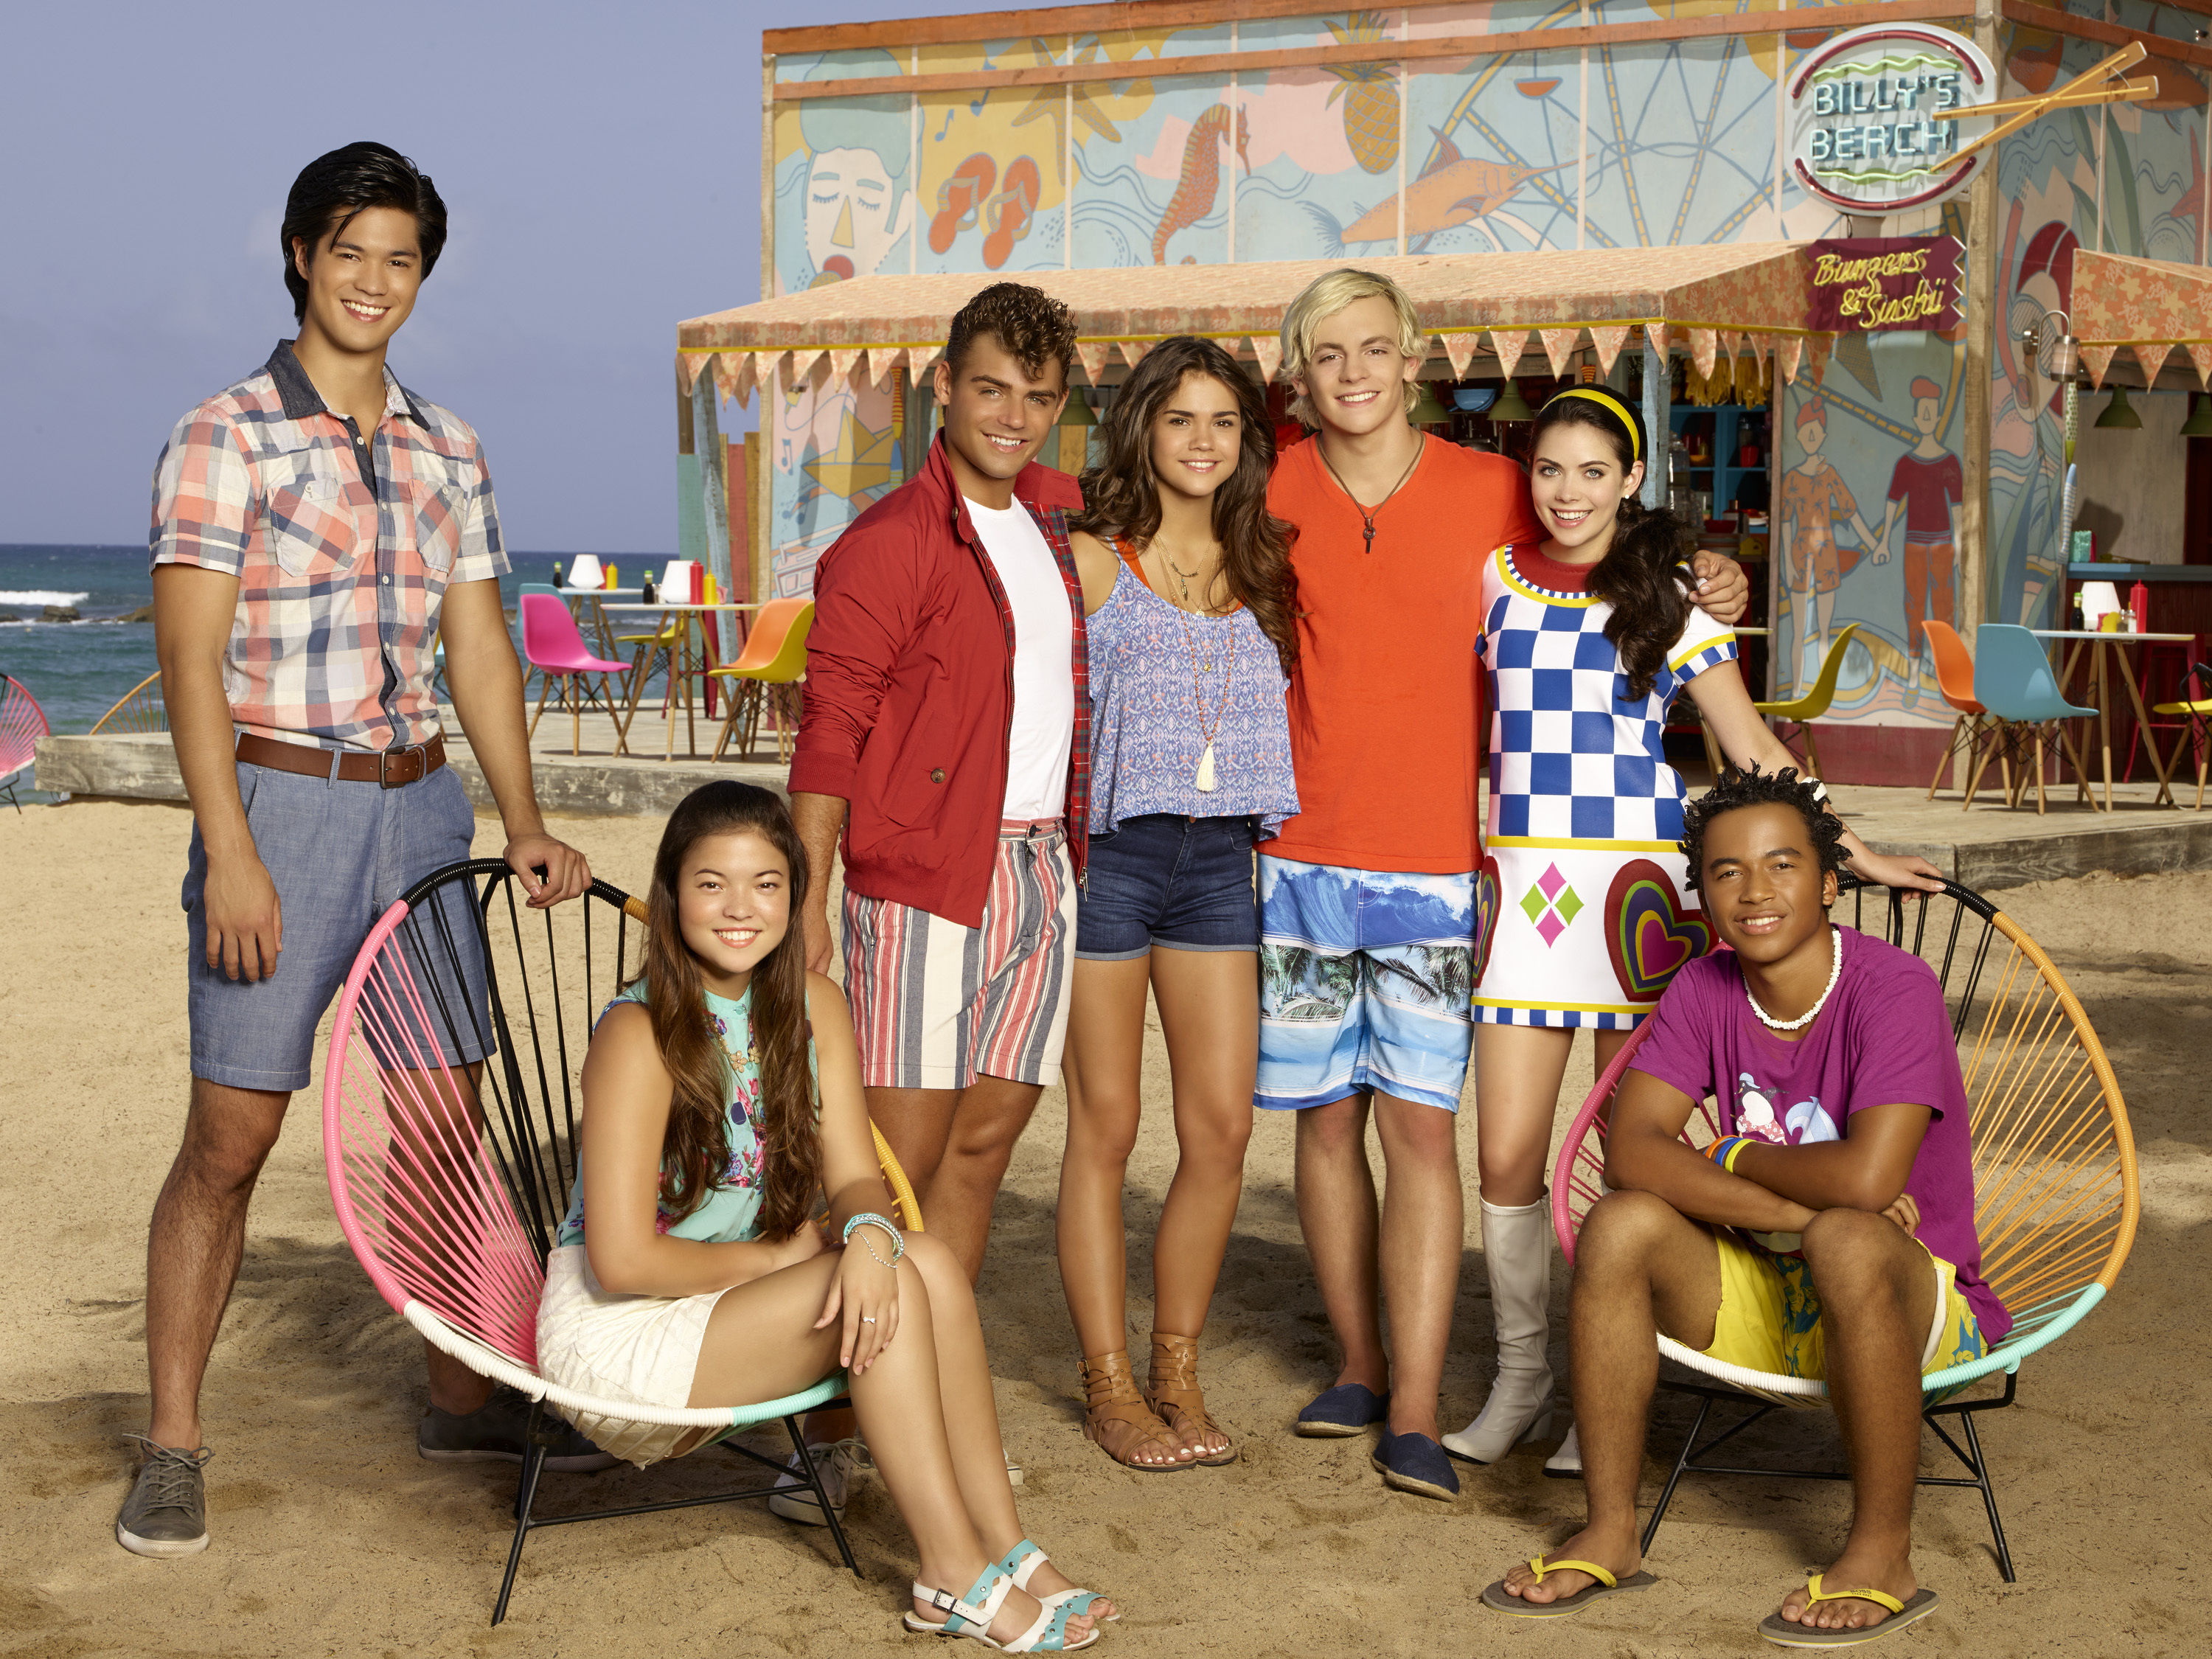 Teen Beach 2 - Disney Channel Original Movie